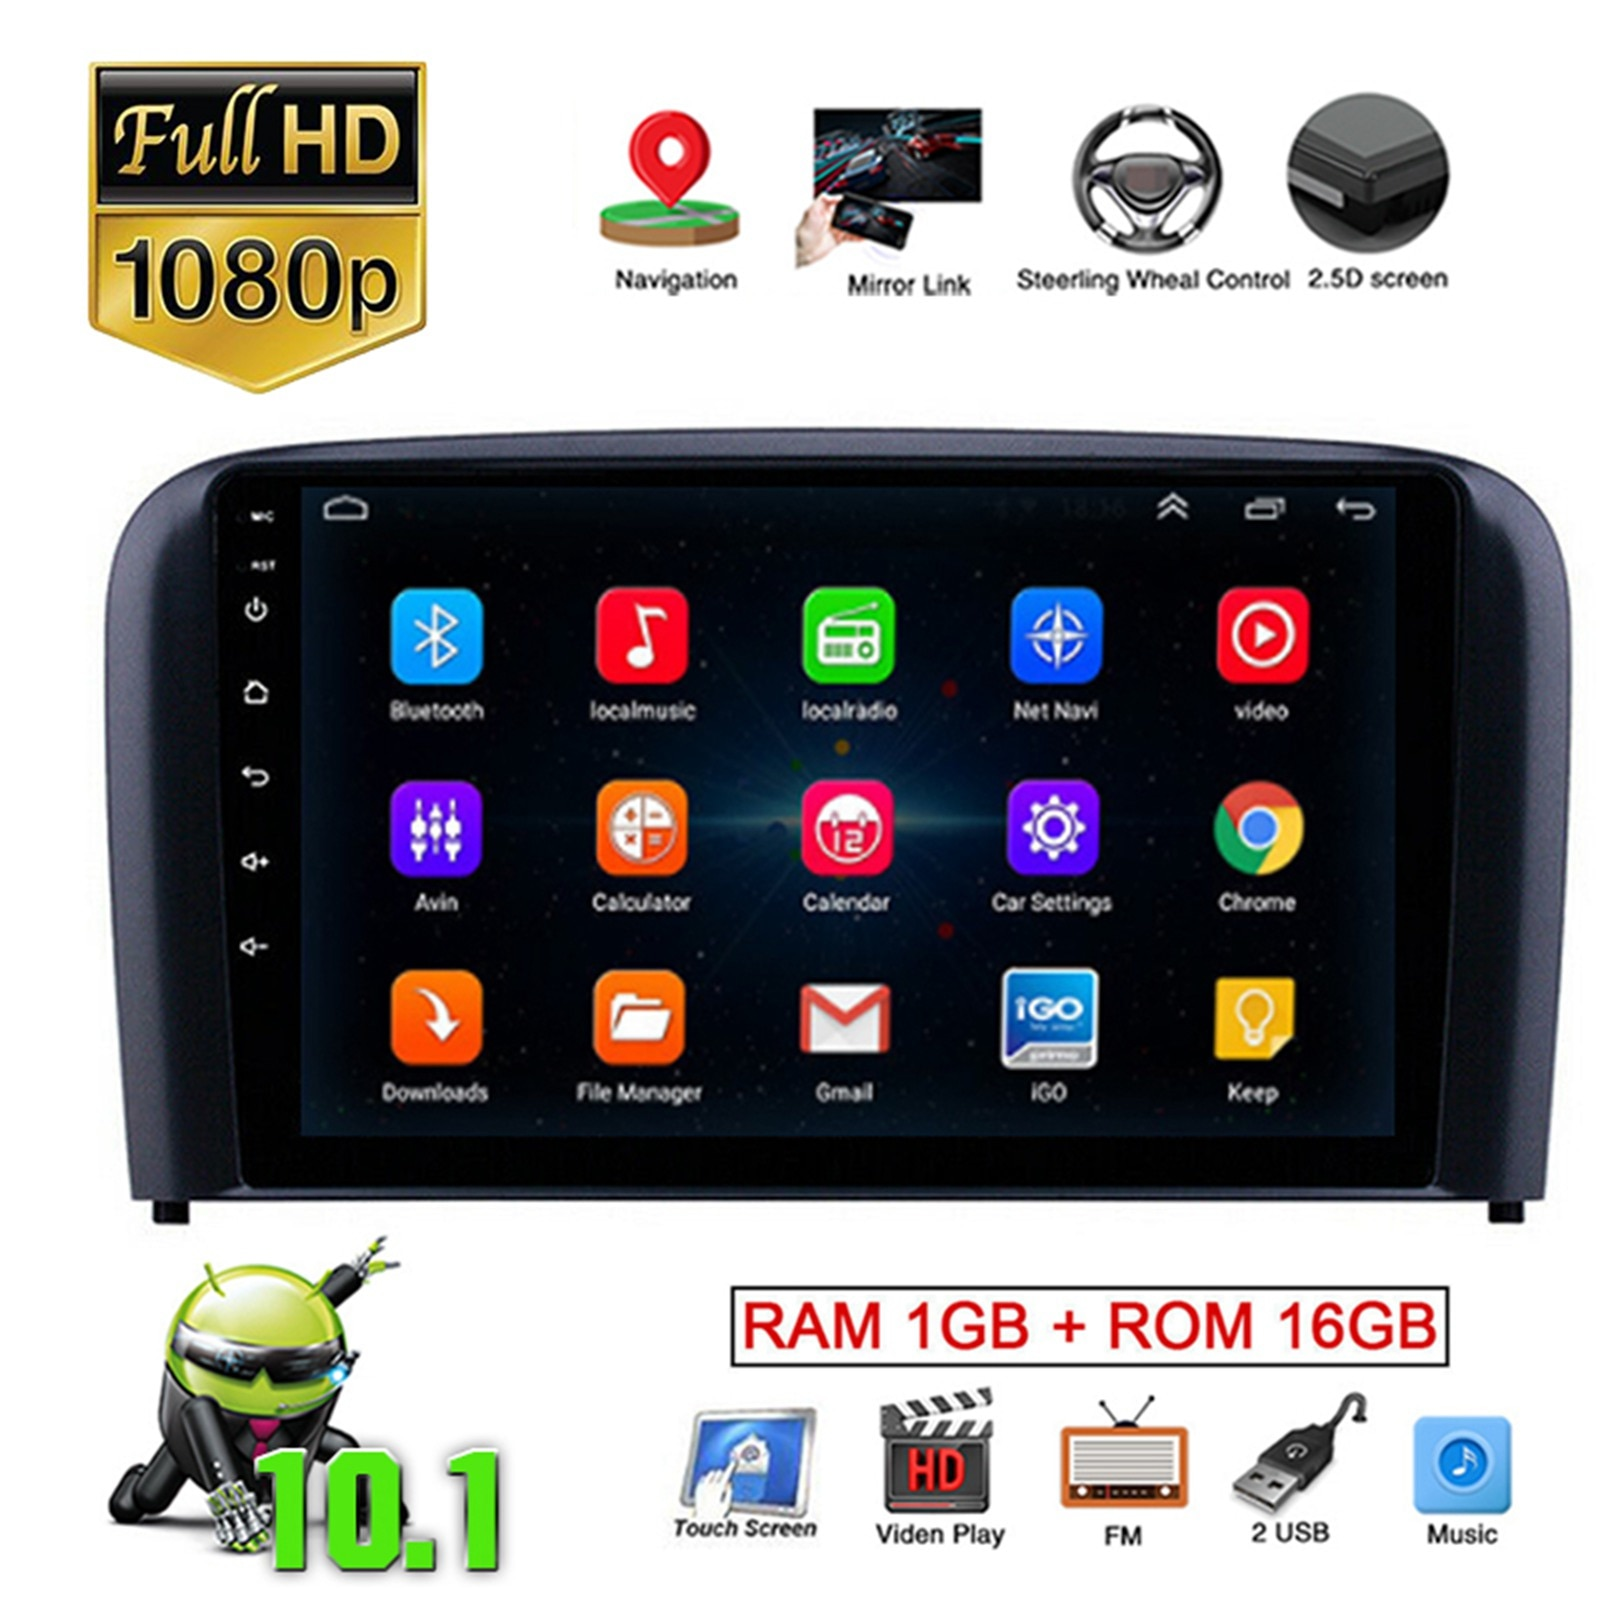 9-android-10-1-car-dvd-player-gps-navigation-car-radio-stereo-wifi-for-volvo-s80-2004-2006-car-multimedia-mp5-player-2-din